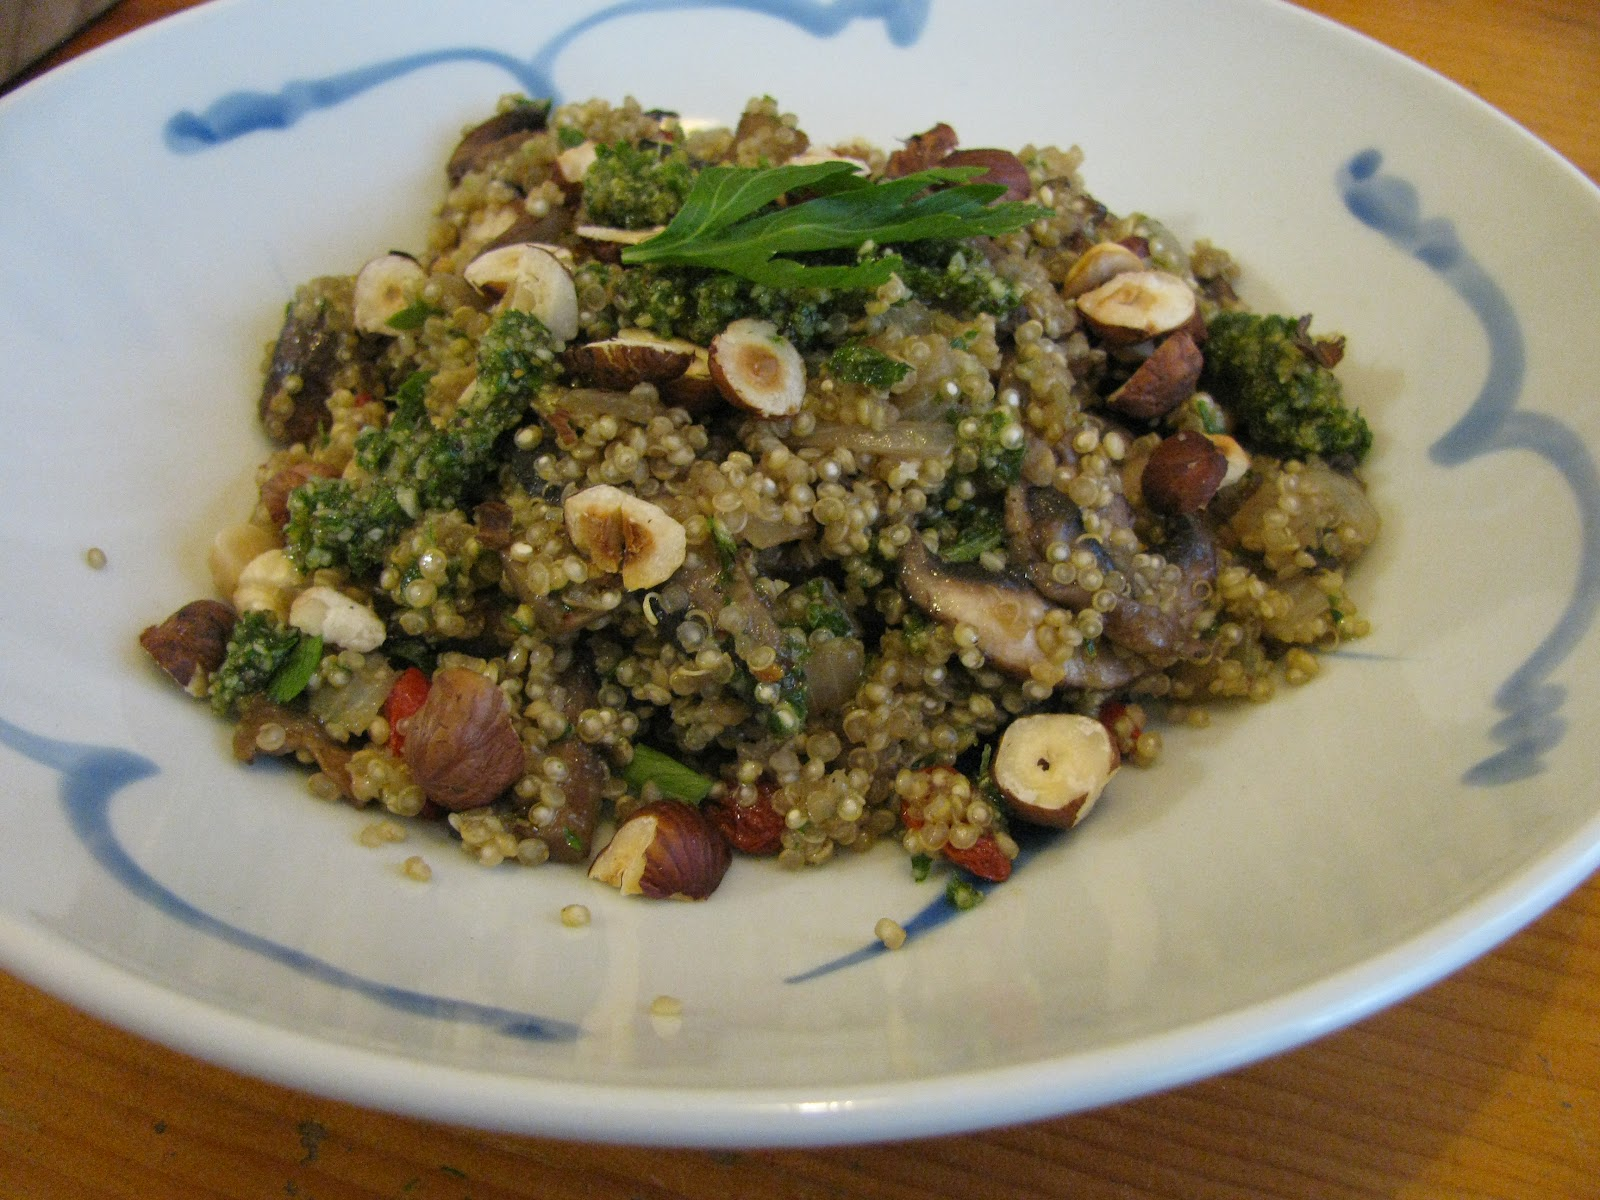 Mushroom And Asparagus Warm Quinoa Recipes — Dishmaps